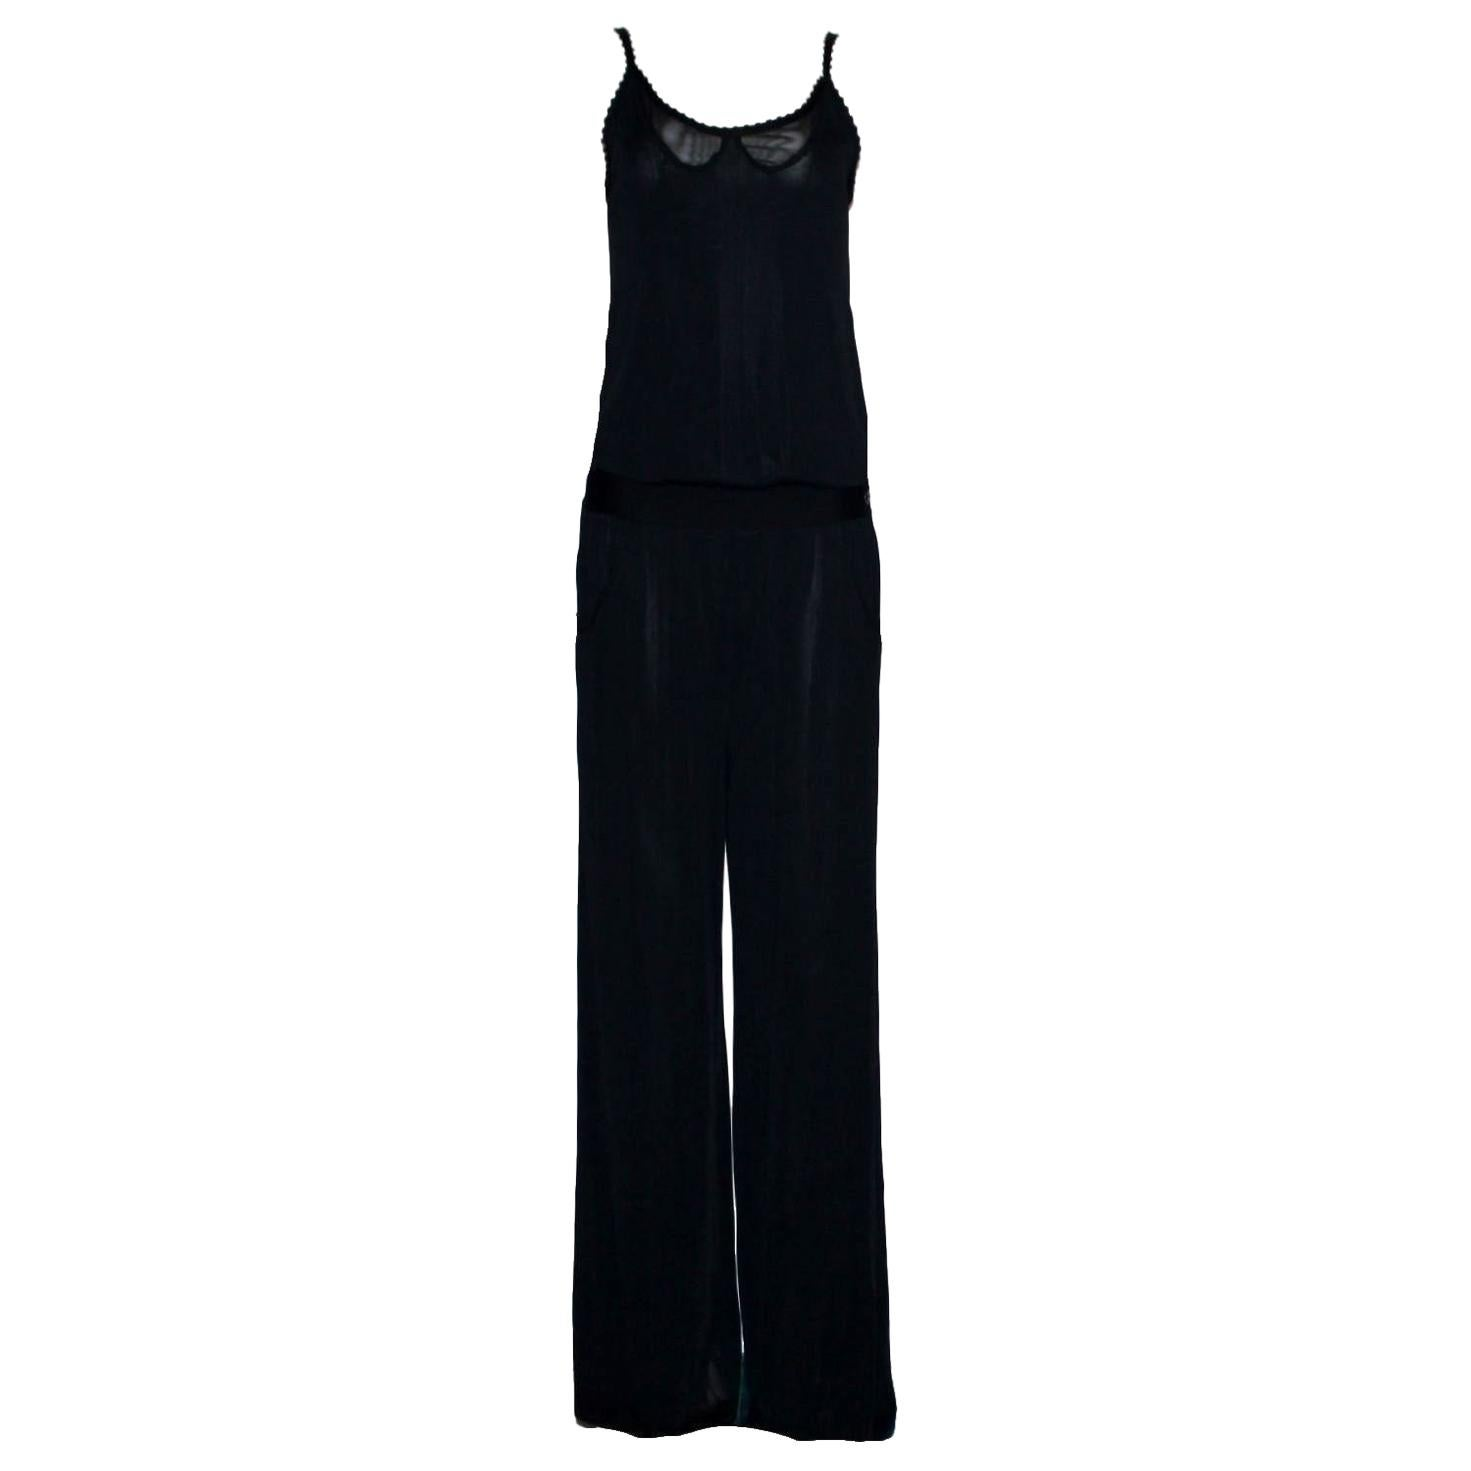 NEW Black Chanel Knitted Wide Leg Jumpsuit Overall Playsuit